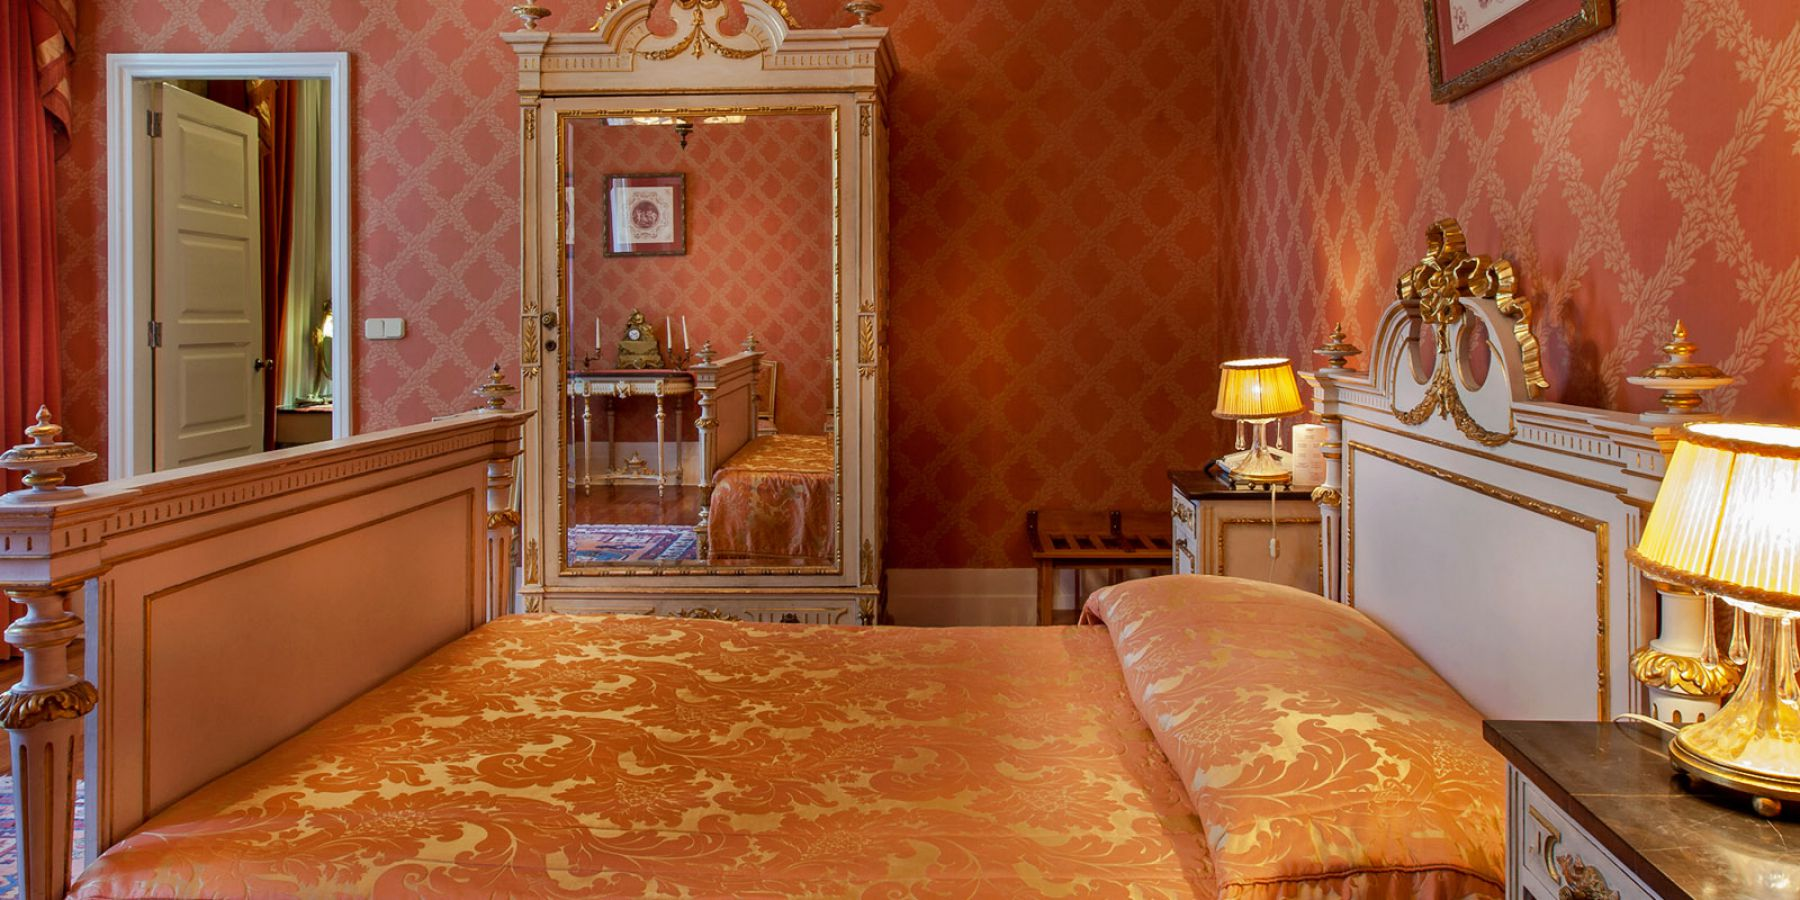 Rooms - Palace Hotel do Bussaco *****